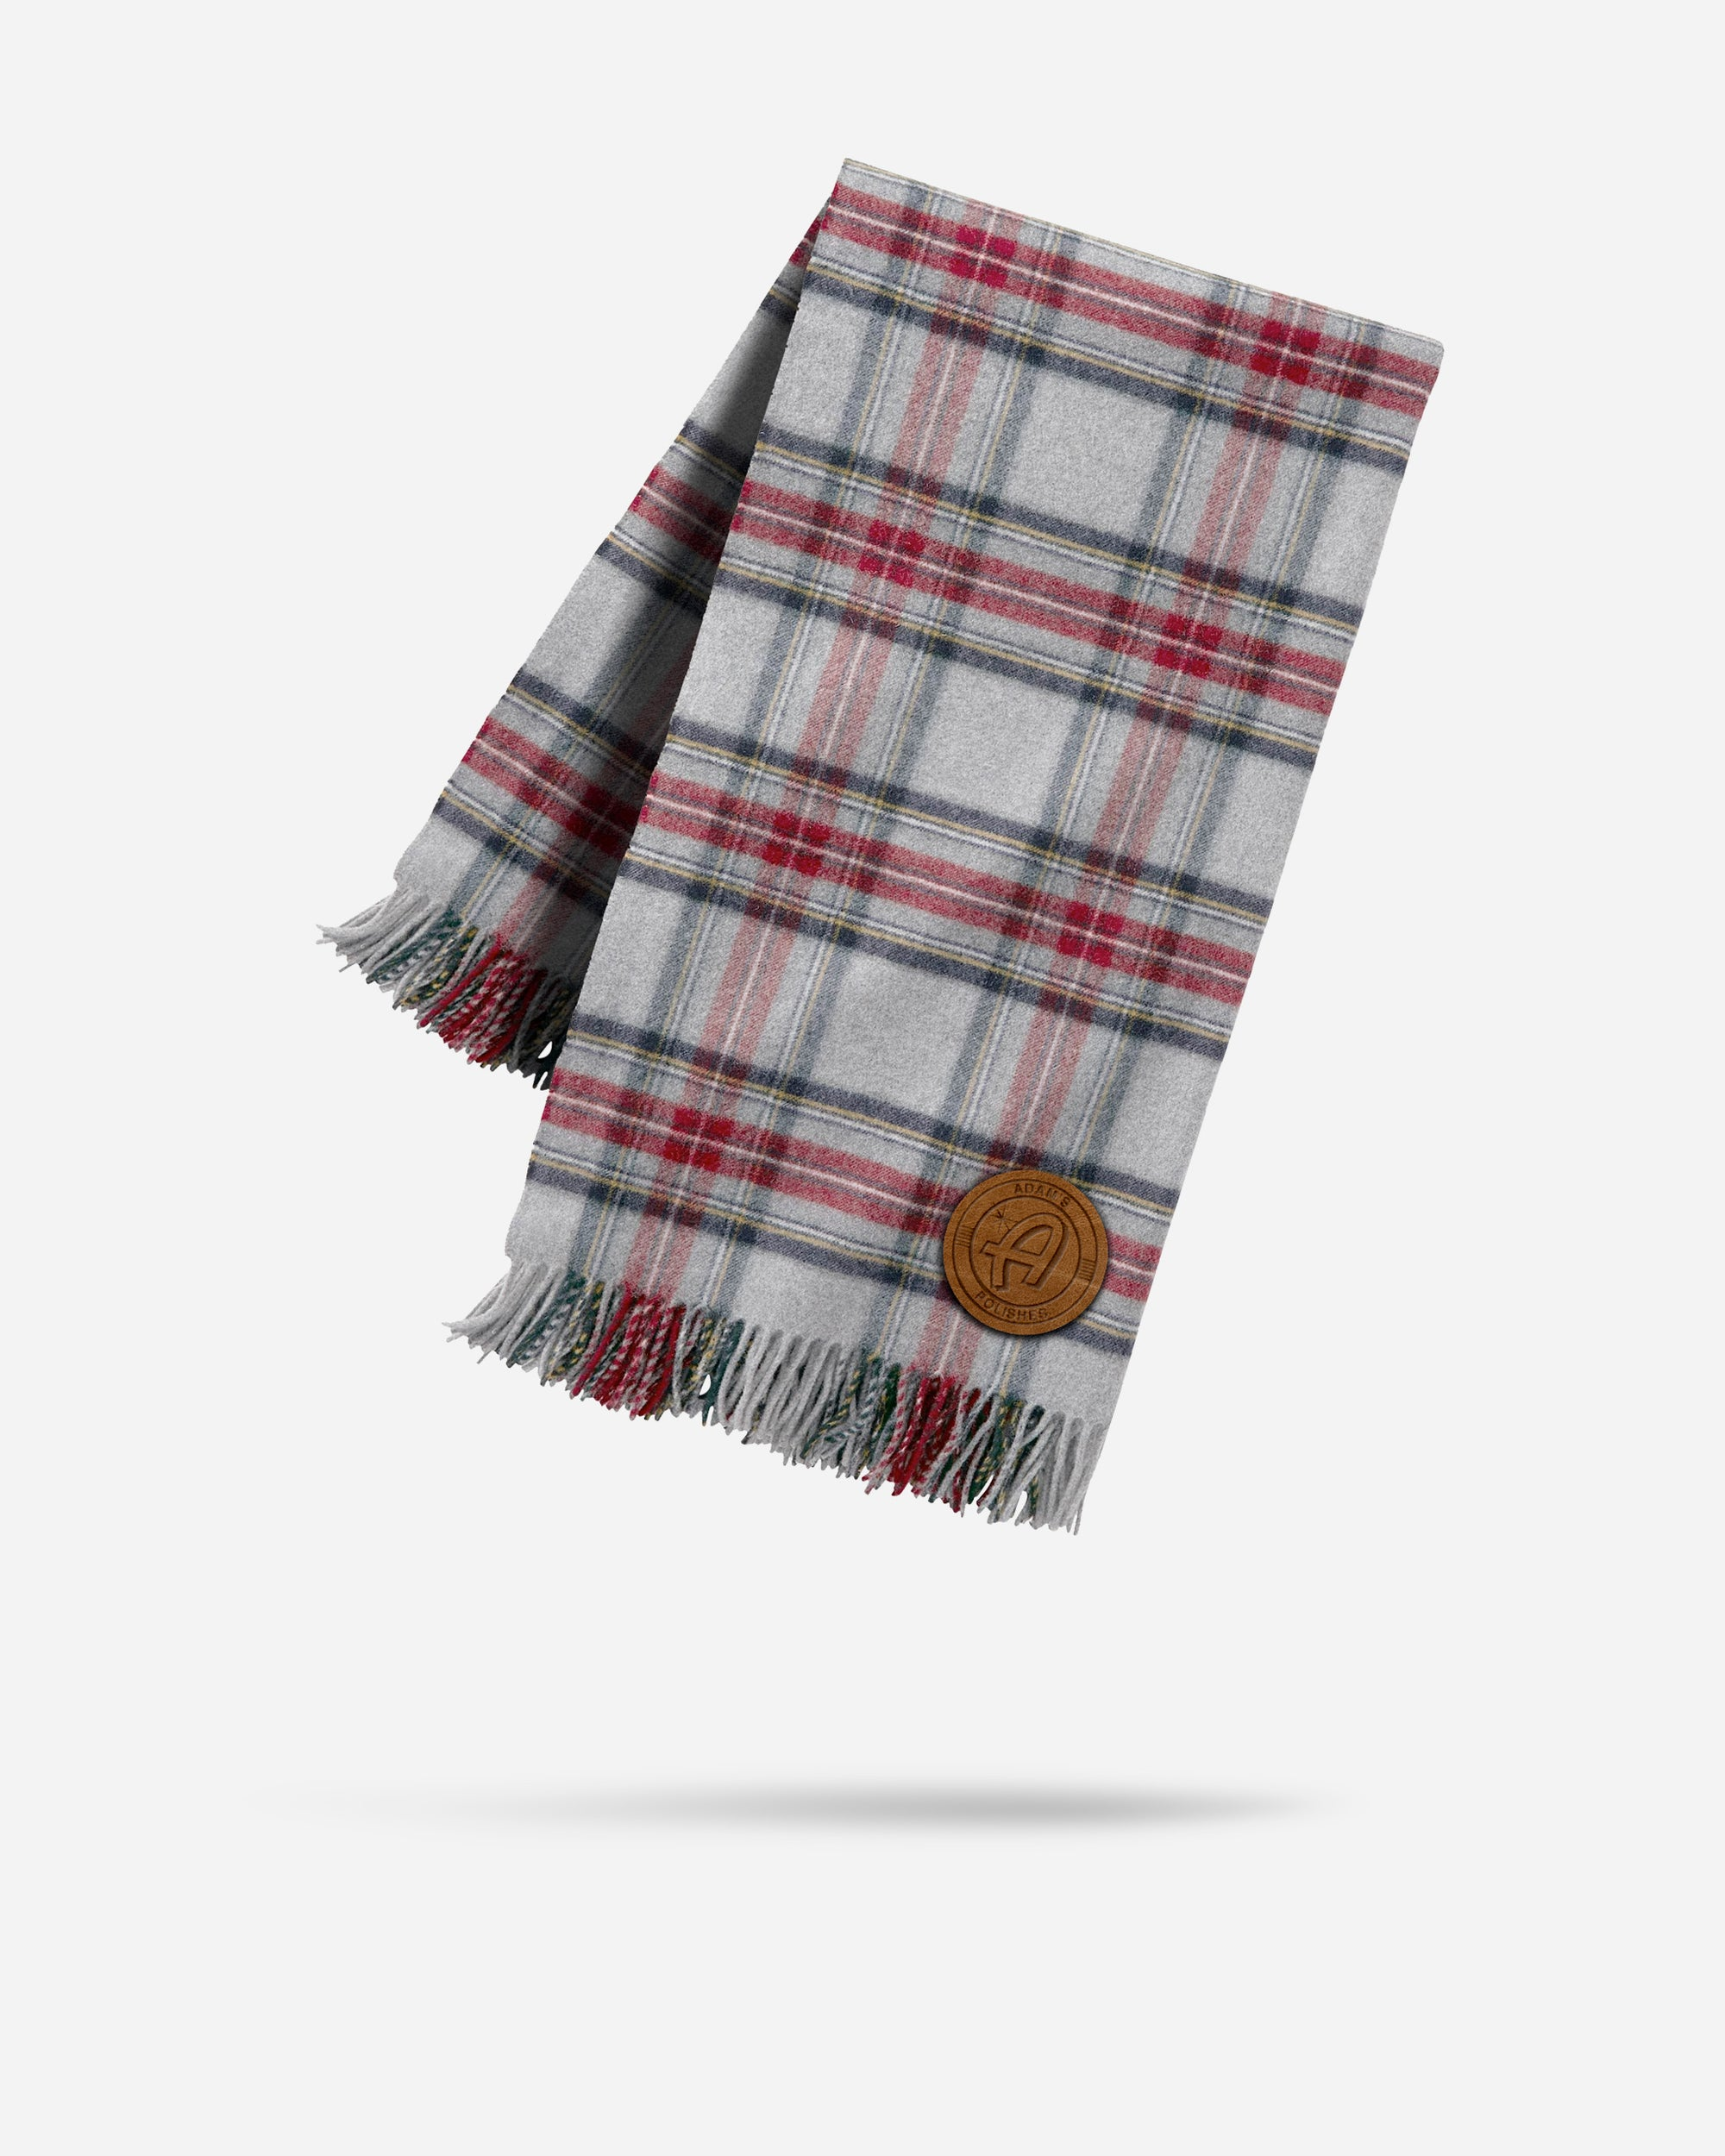 Adam's x Pendleton Plaid Fringed Blanket